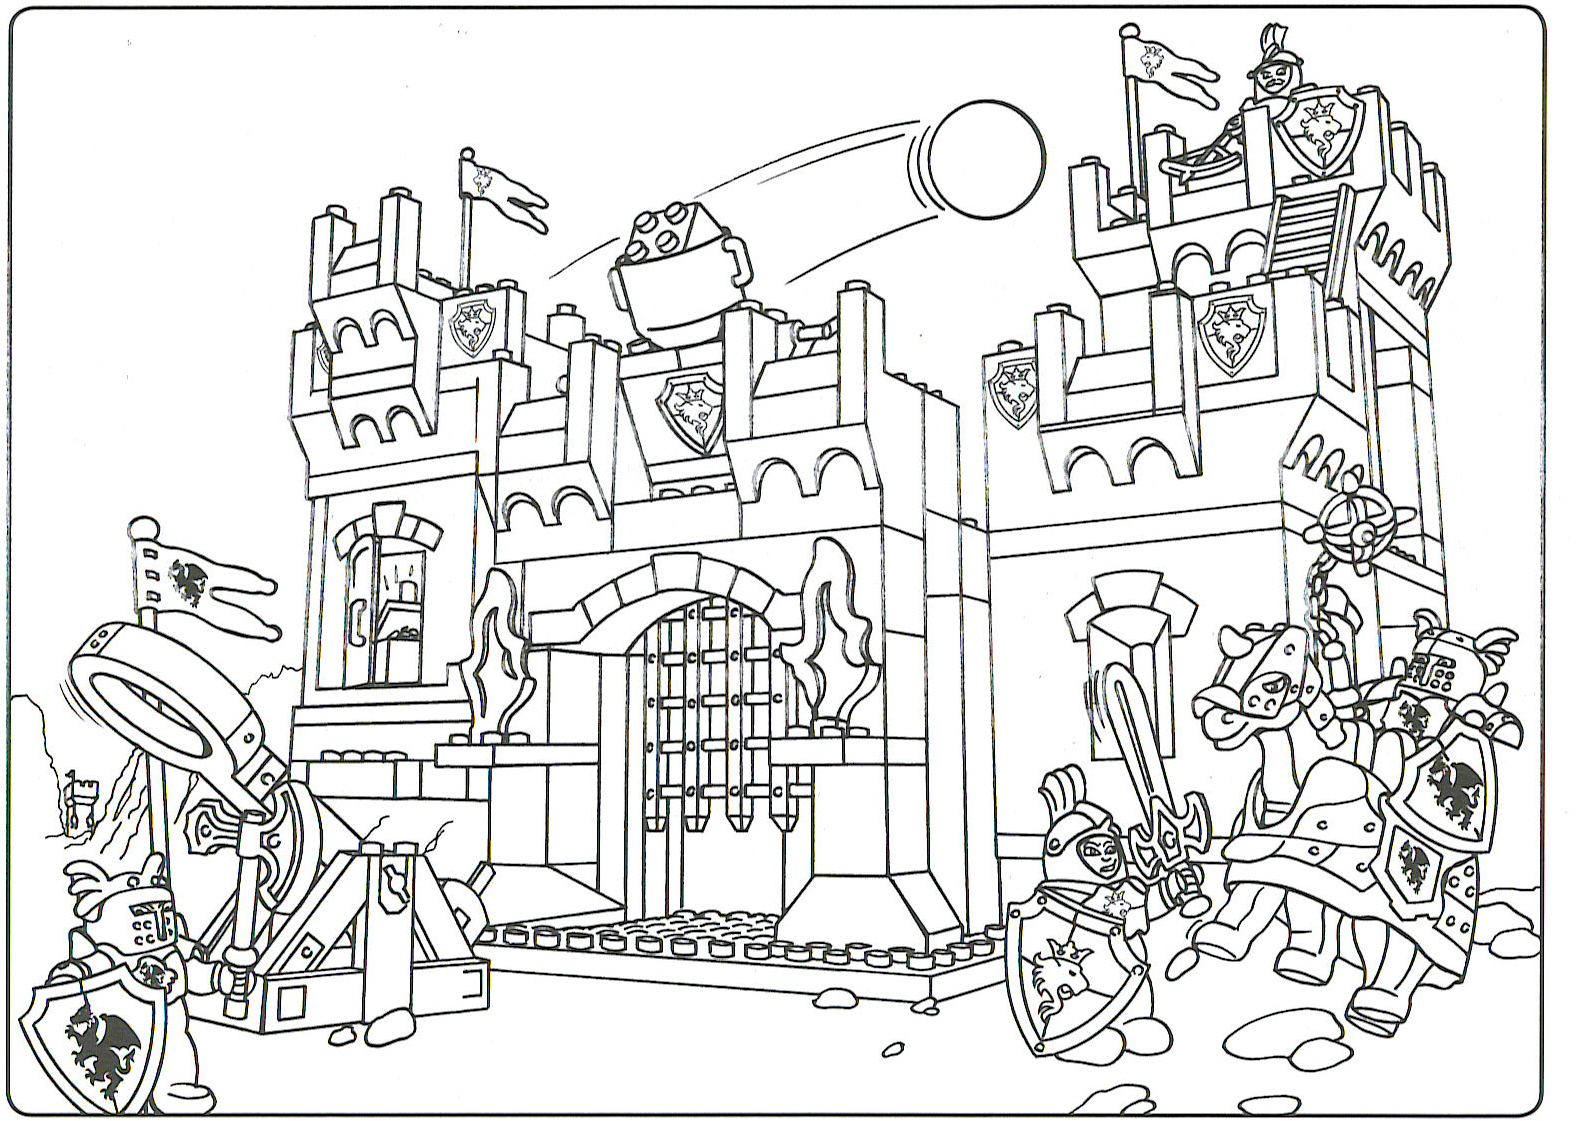 Brick Lego Colouring Pages Page 2 Lego Brick Coloring Page